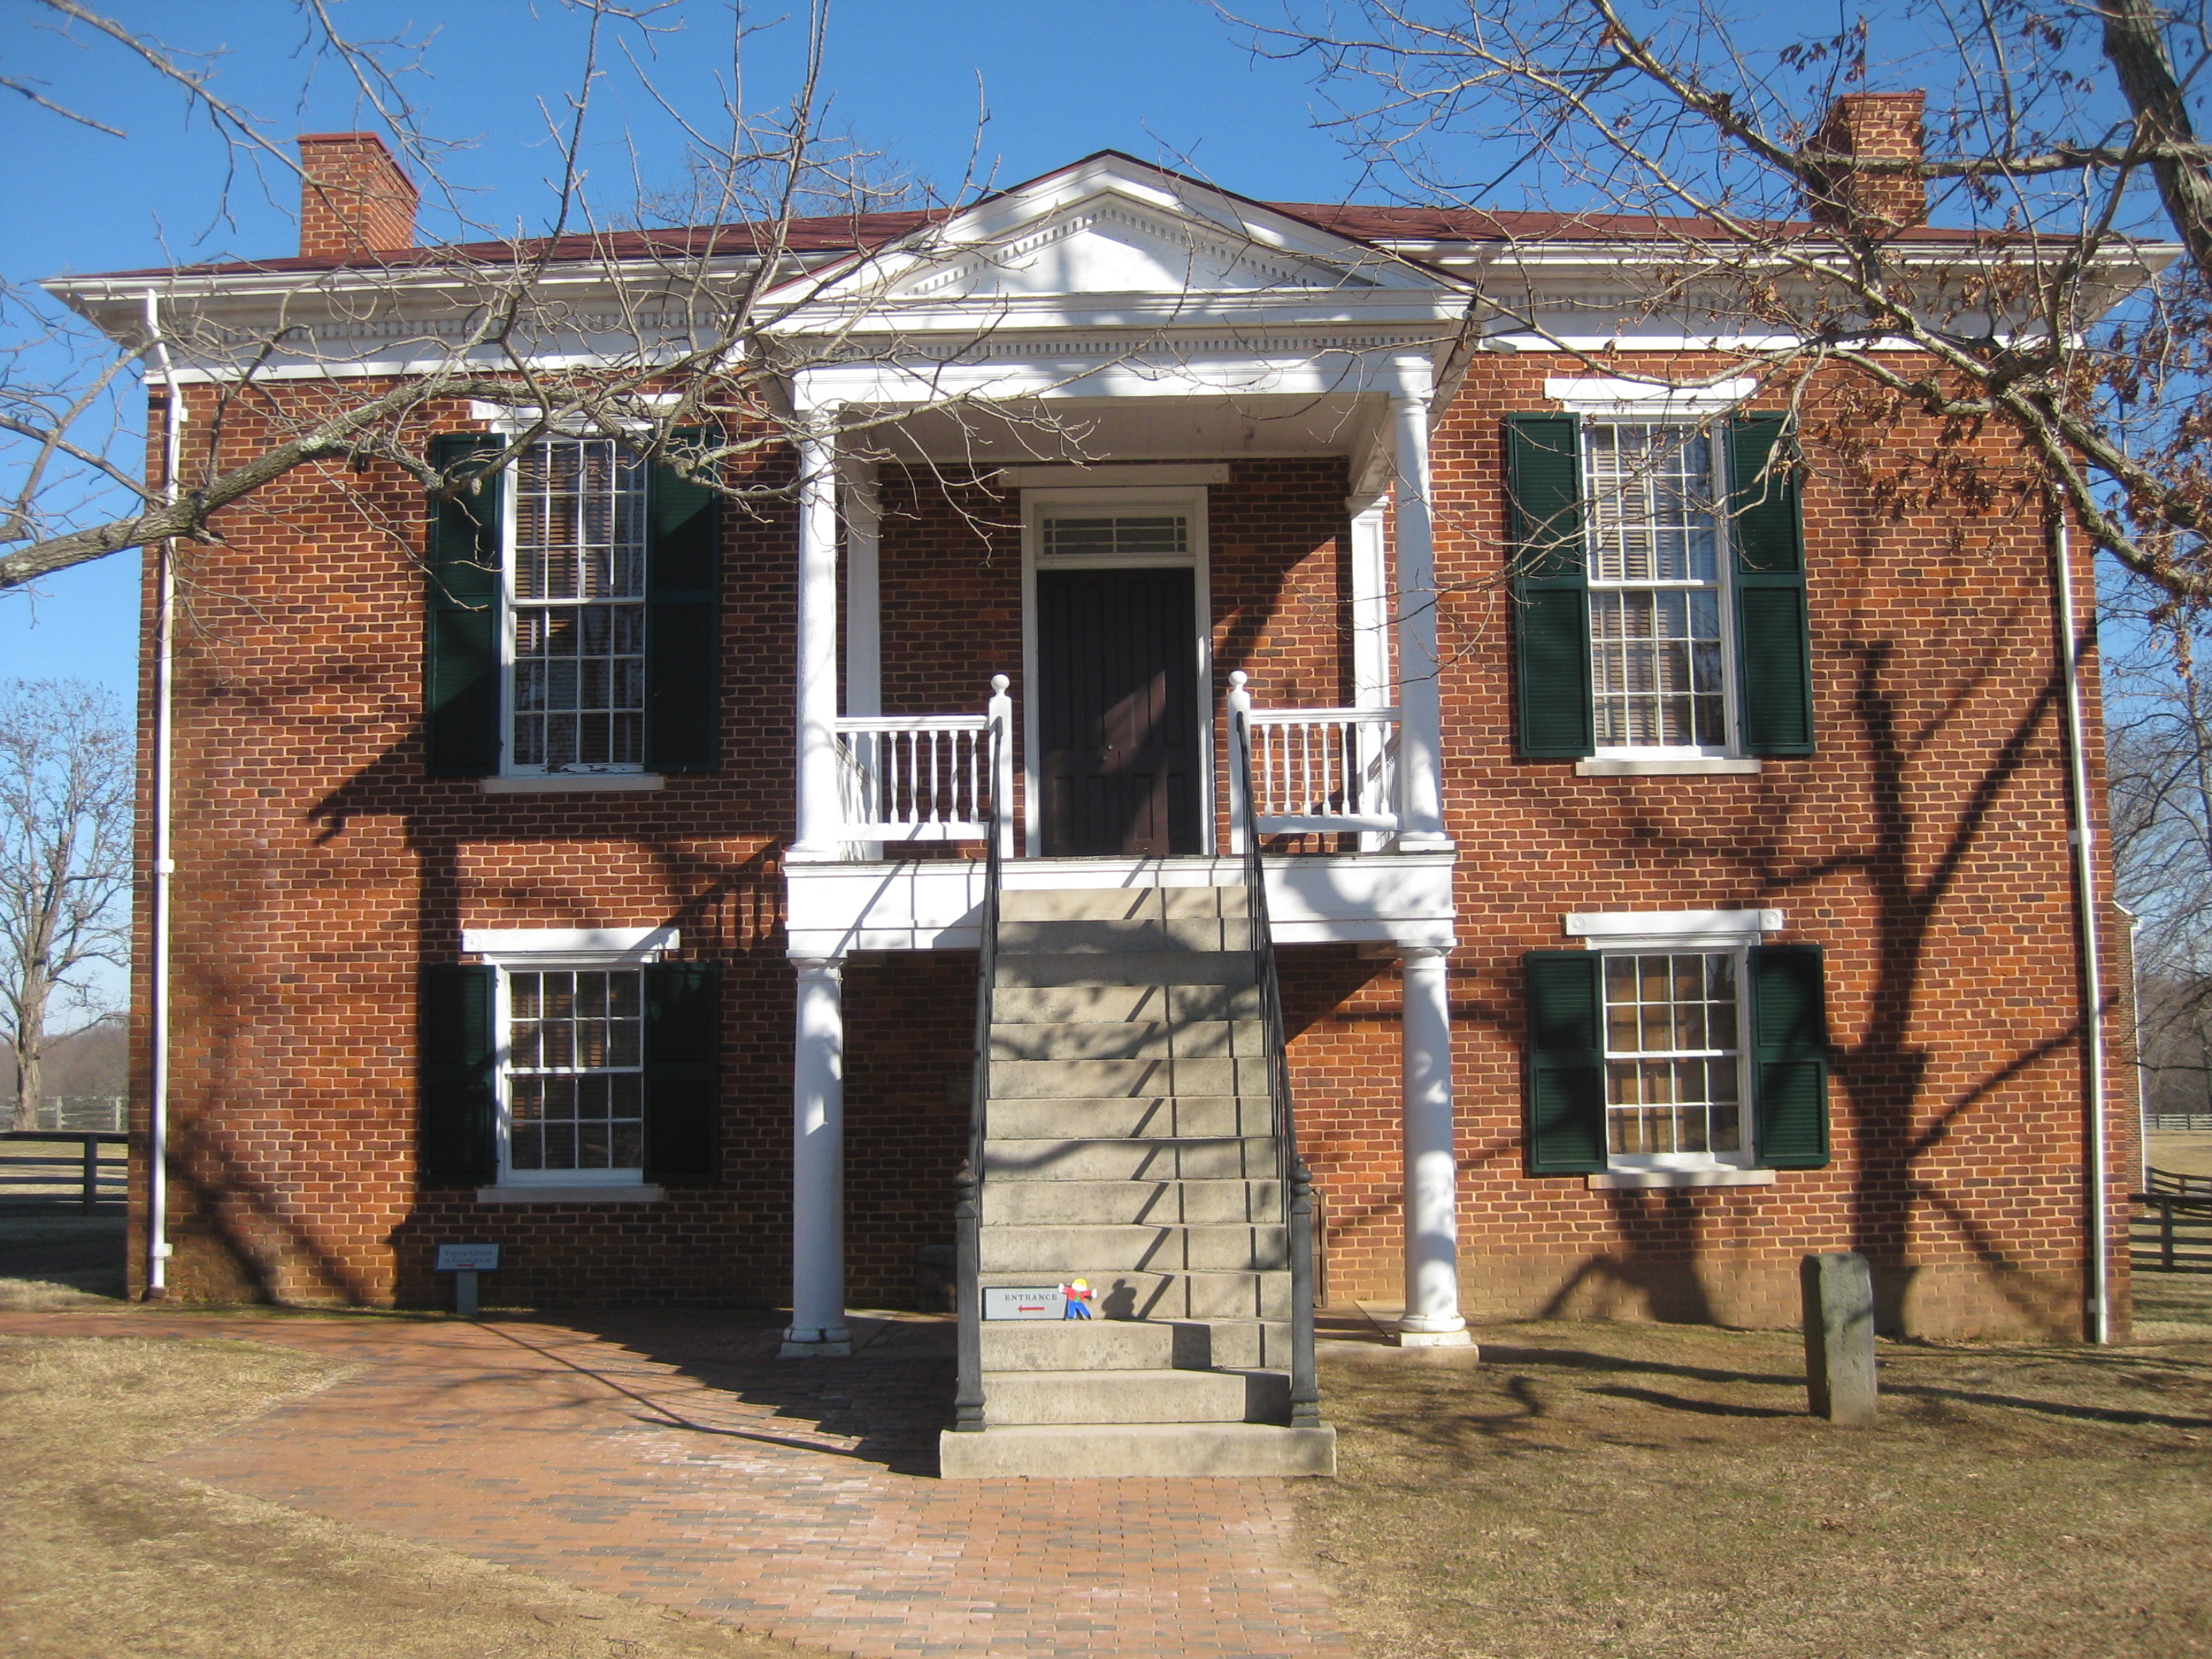 Historic Structures at Appomattox Court House  Appomattox Court House National Historical Park